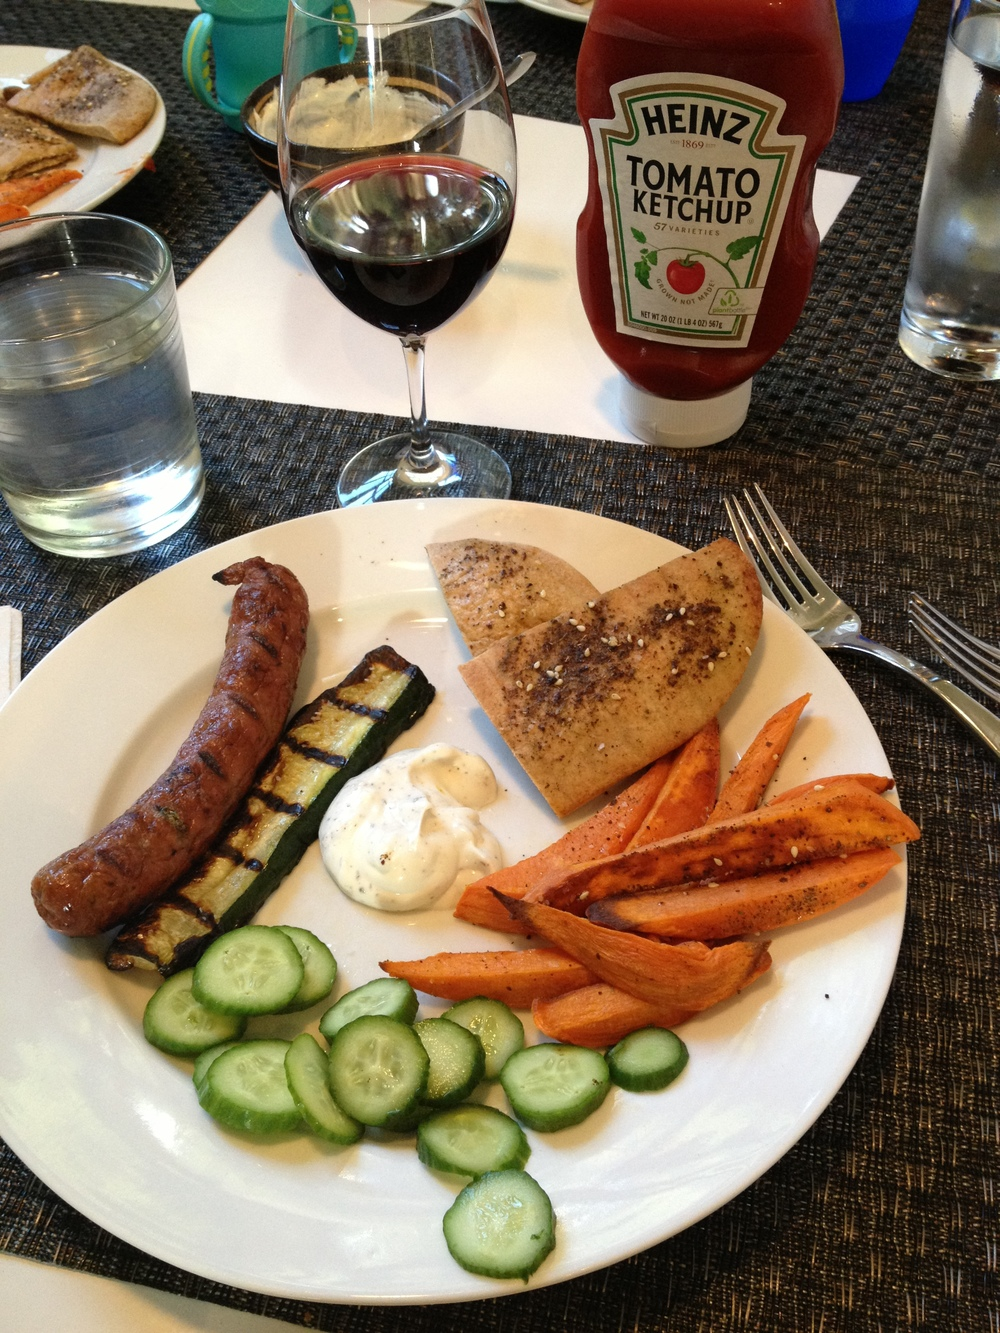 The ketchup makes the sweet potato fries a much easier sell . . .